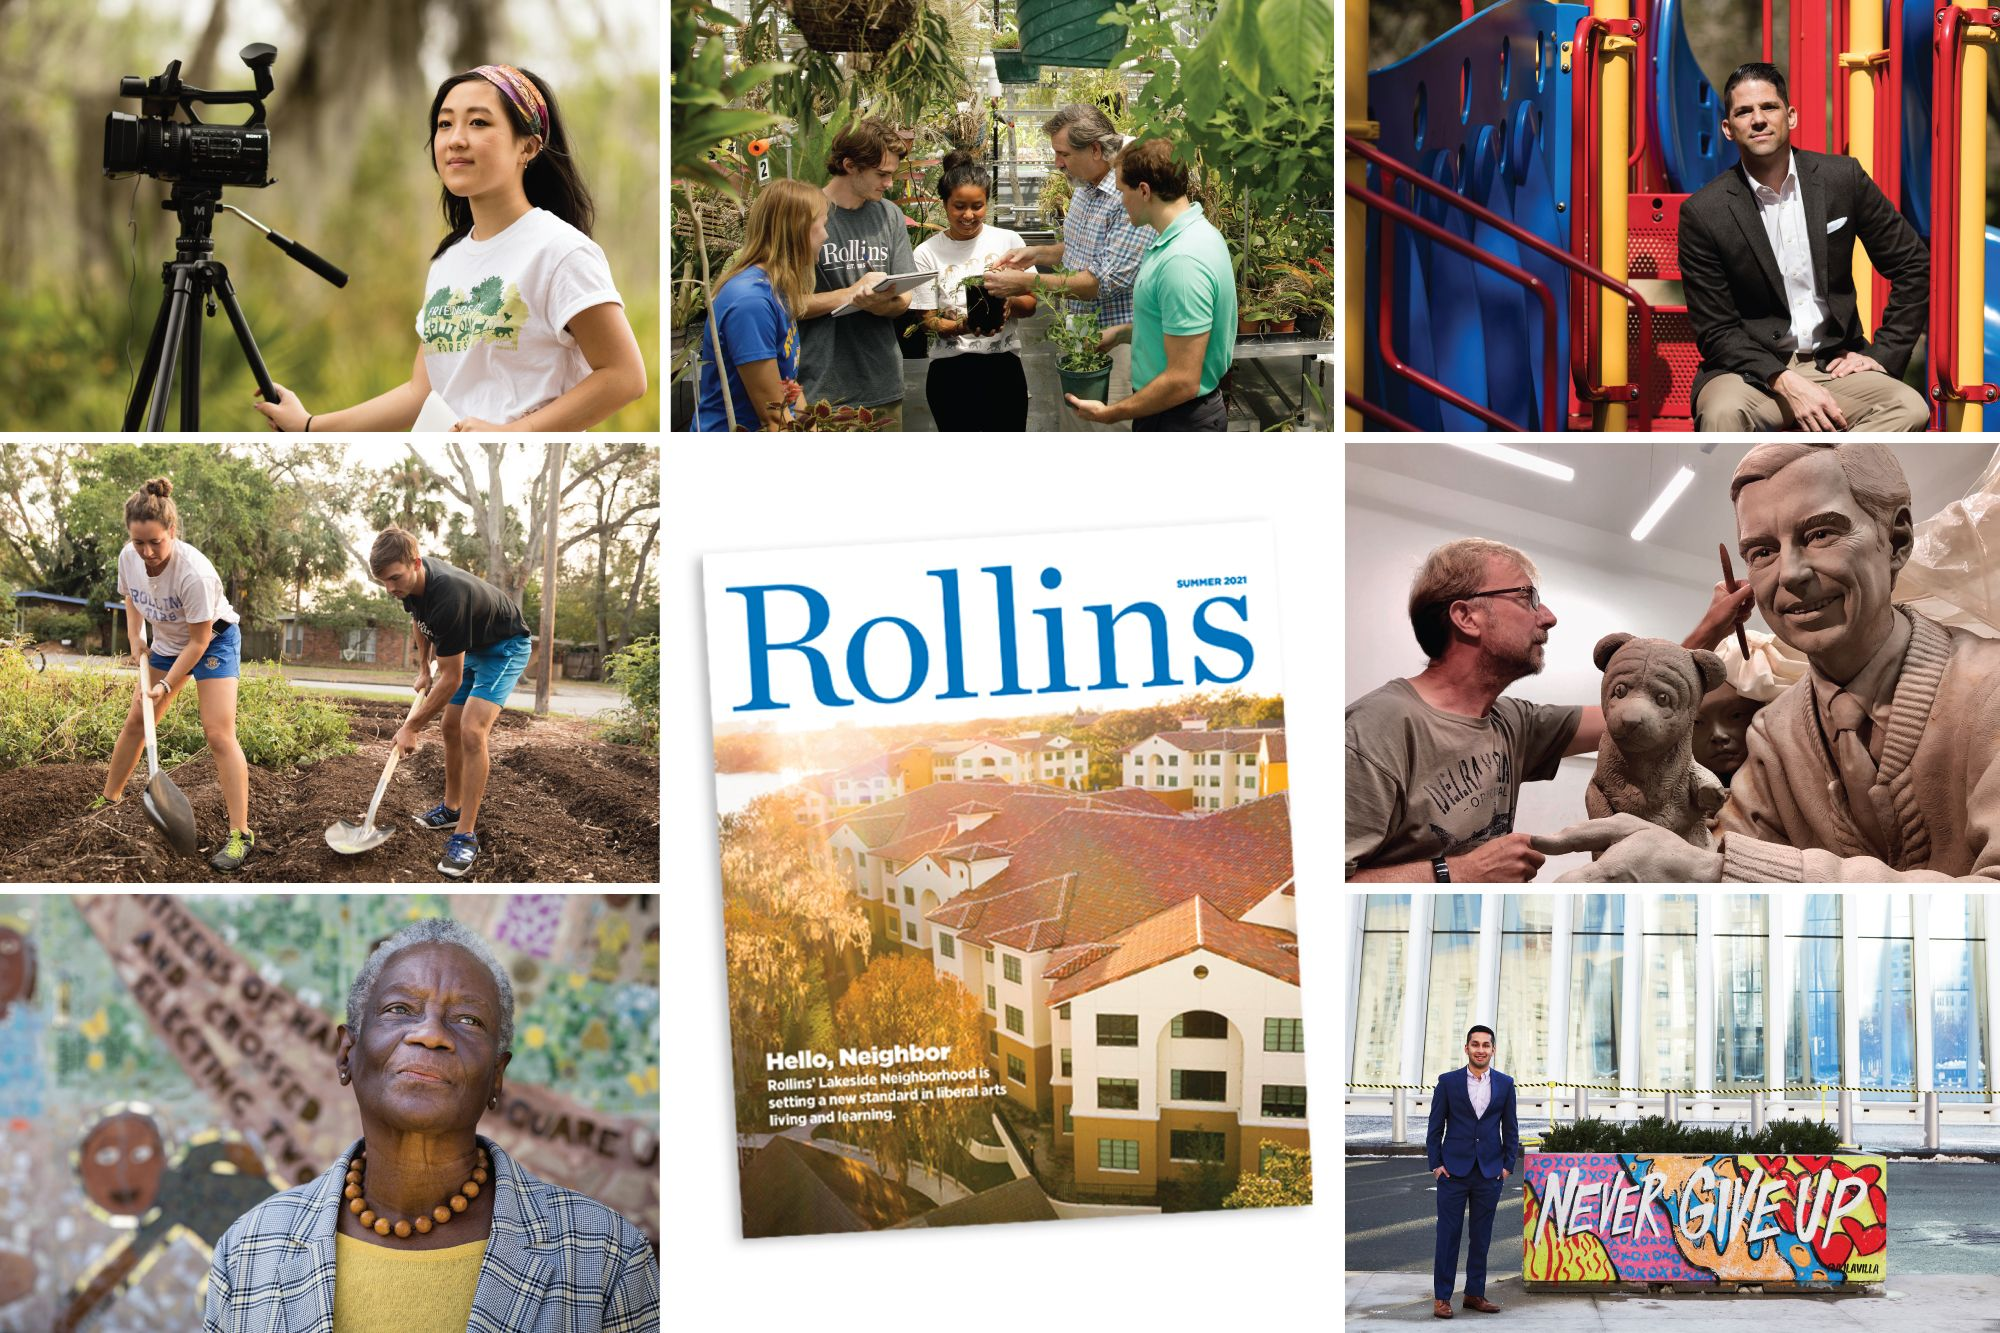 A grid of images from the summer 2021 issue of Rollins magazine, including the cover depicting Lakeside Neighborhood.